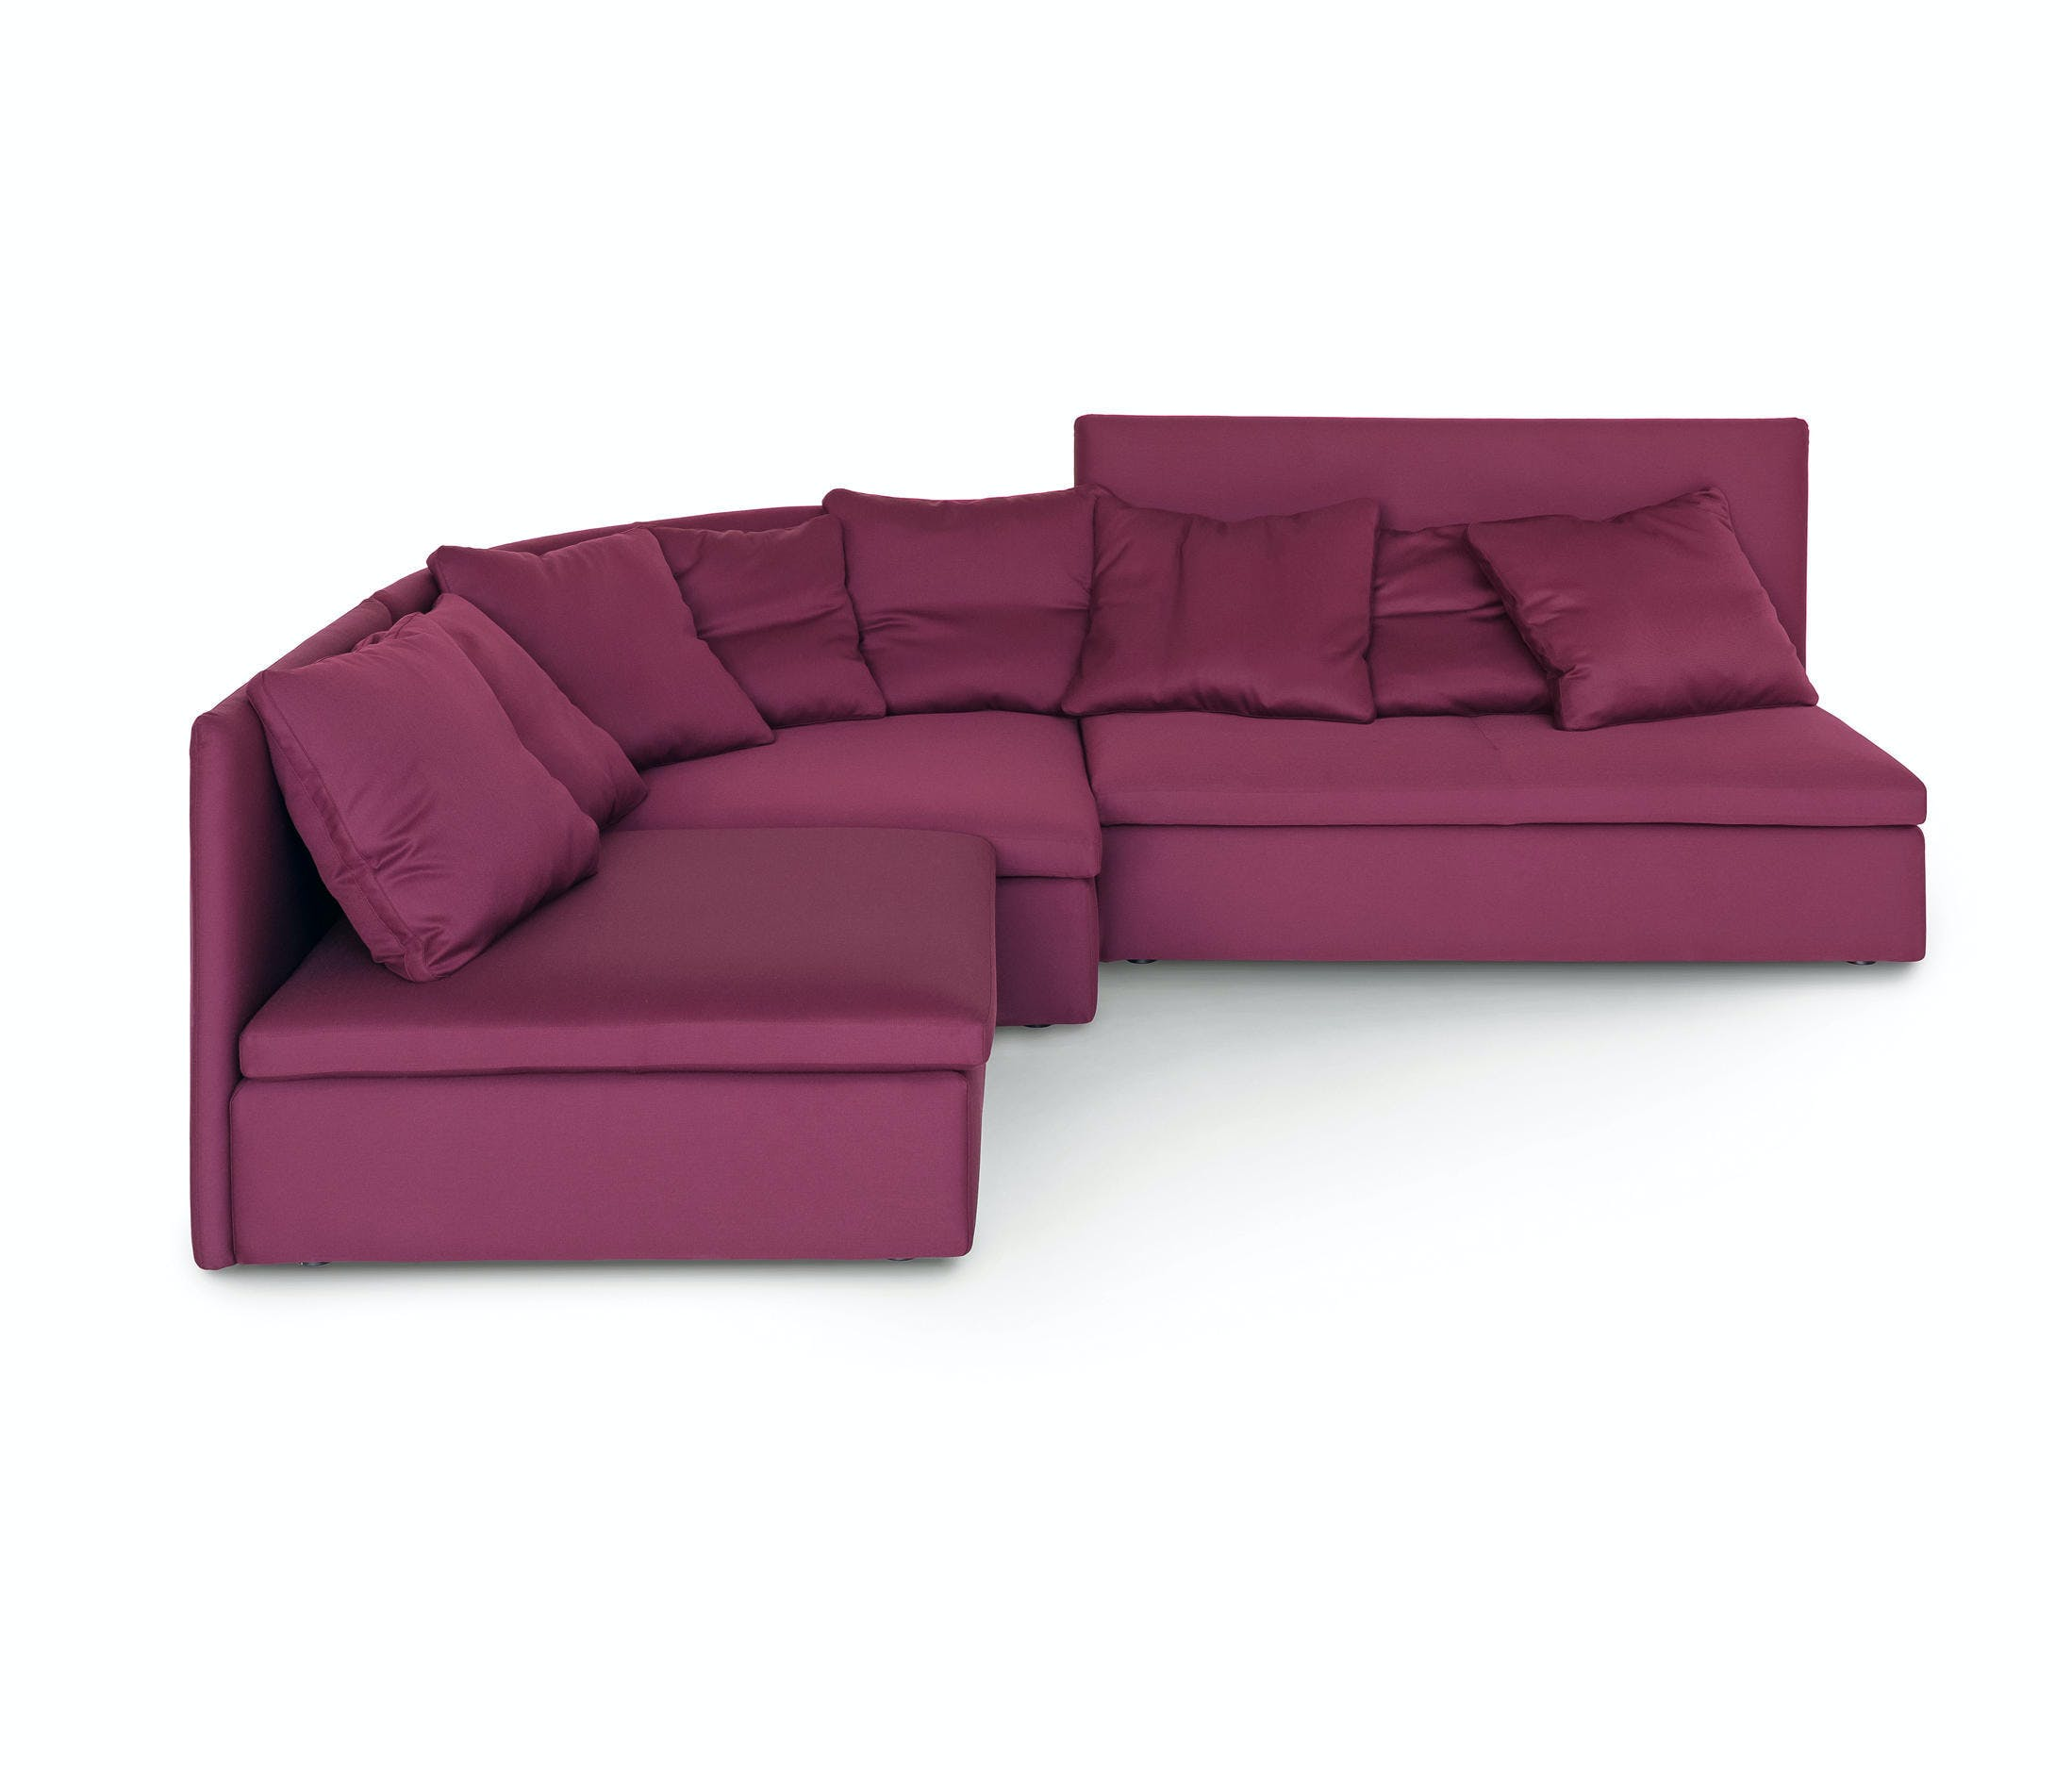 Arflex Fuschia Mangold Curved Sectional Sofa Haute Living